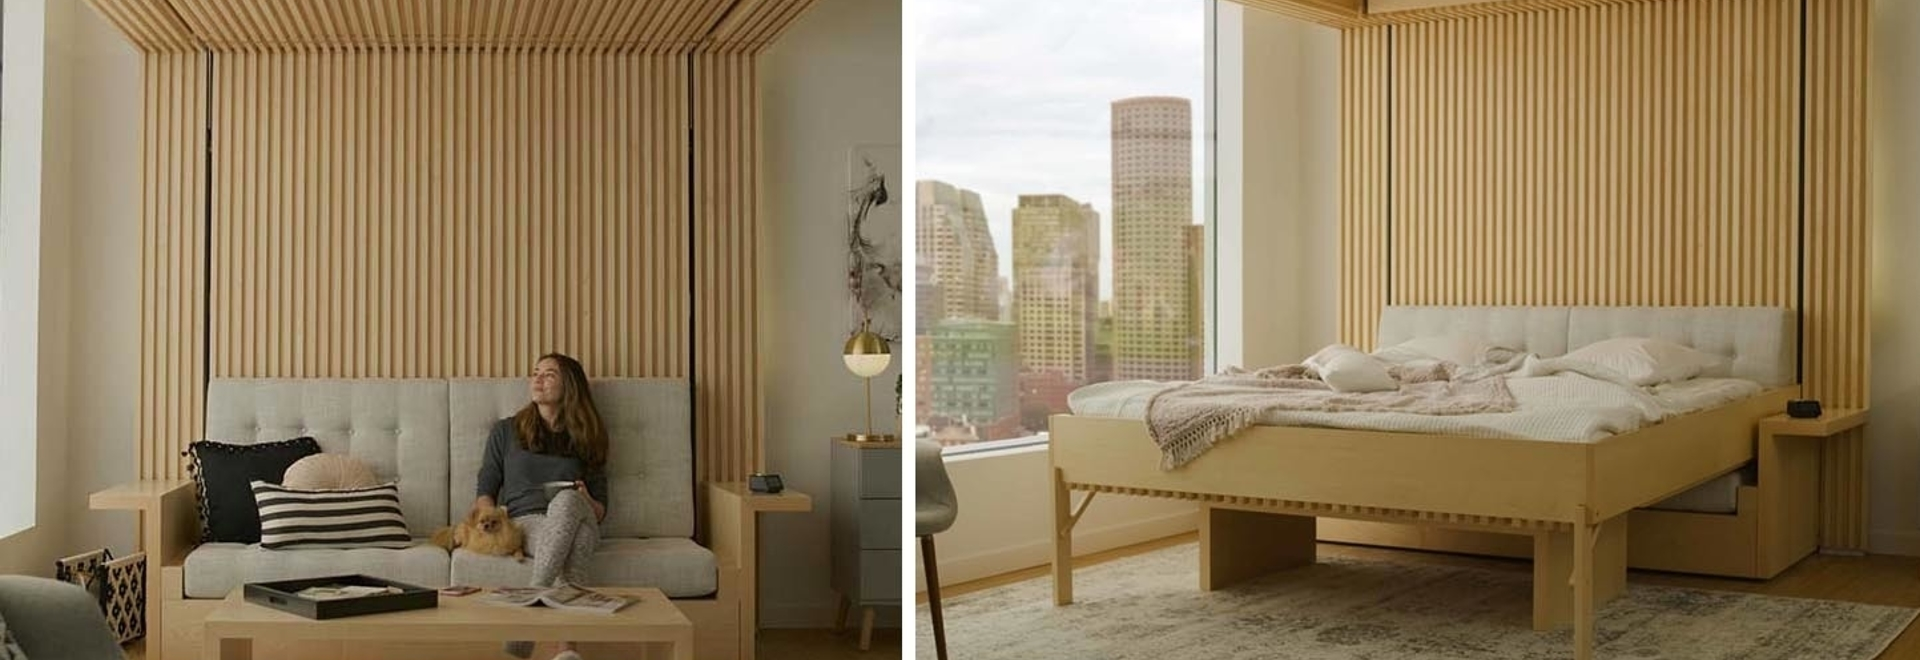 This Bed That Drops Down From The Ceiling Was Designed As A Solution For Small Apartments